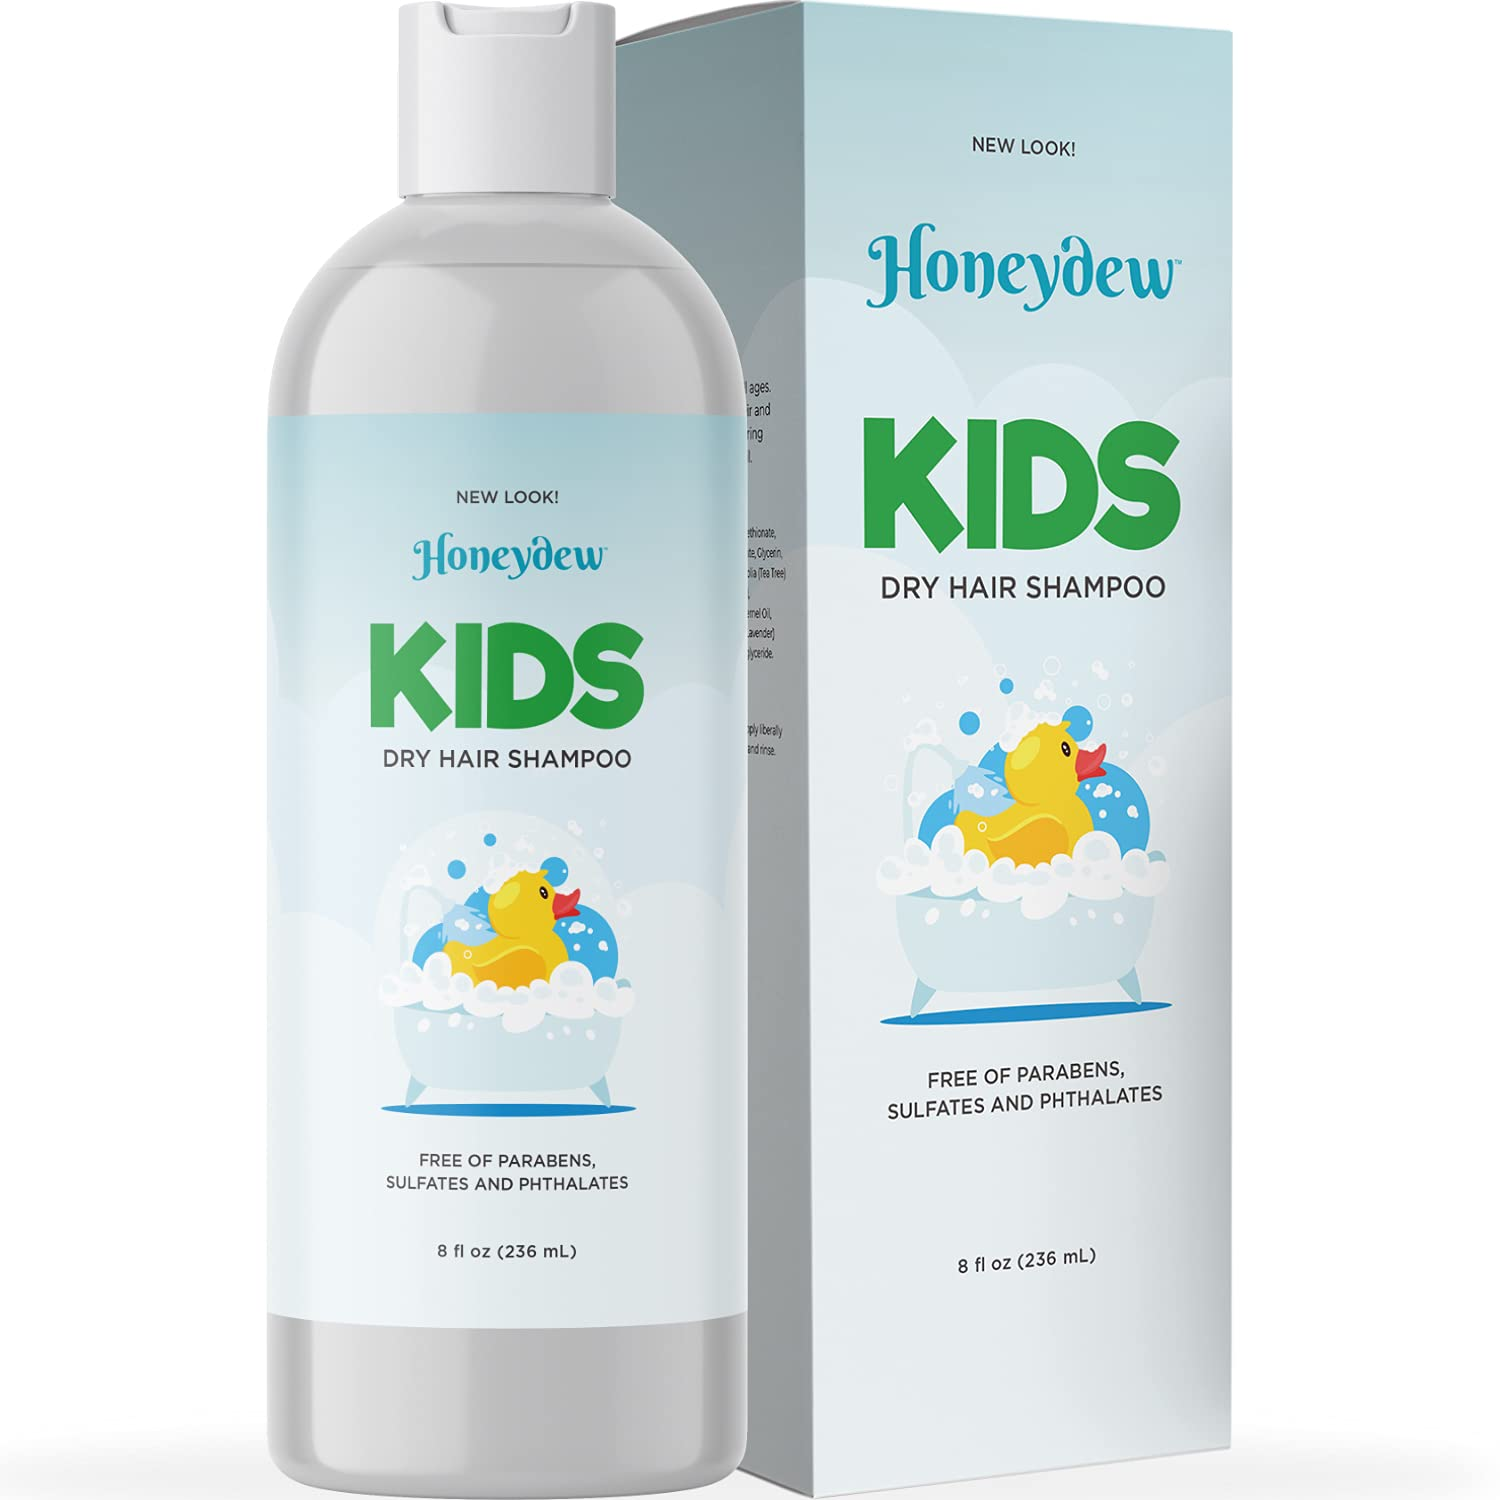 Nourishing Kids Shampoo for Dry Scalp - Gentle Dry Scalp Care Shampoo for Kids with Cleansing Essential Oils for Kids - Clarifying Shampoo for Build Up and Dry Flaky Scalp with Tea Tree Oil for Hair